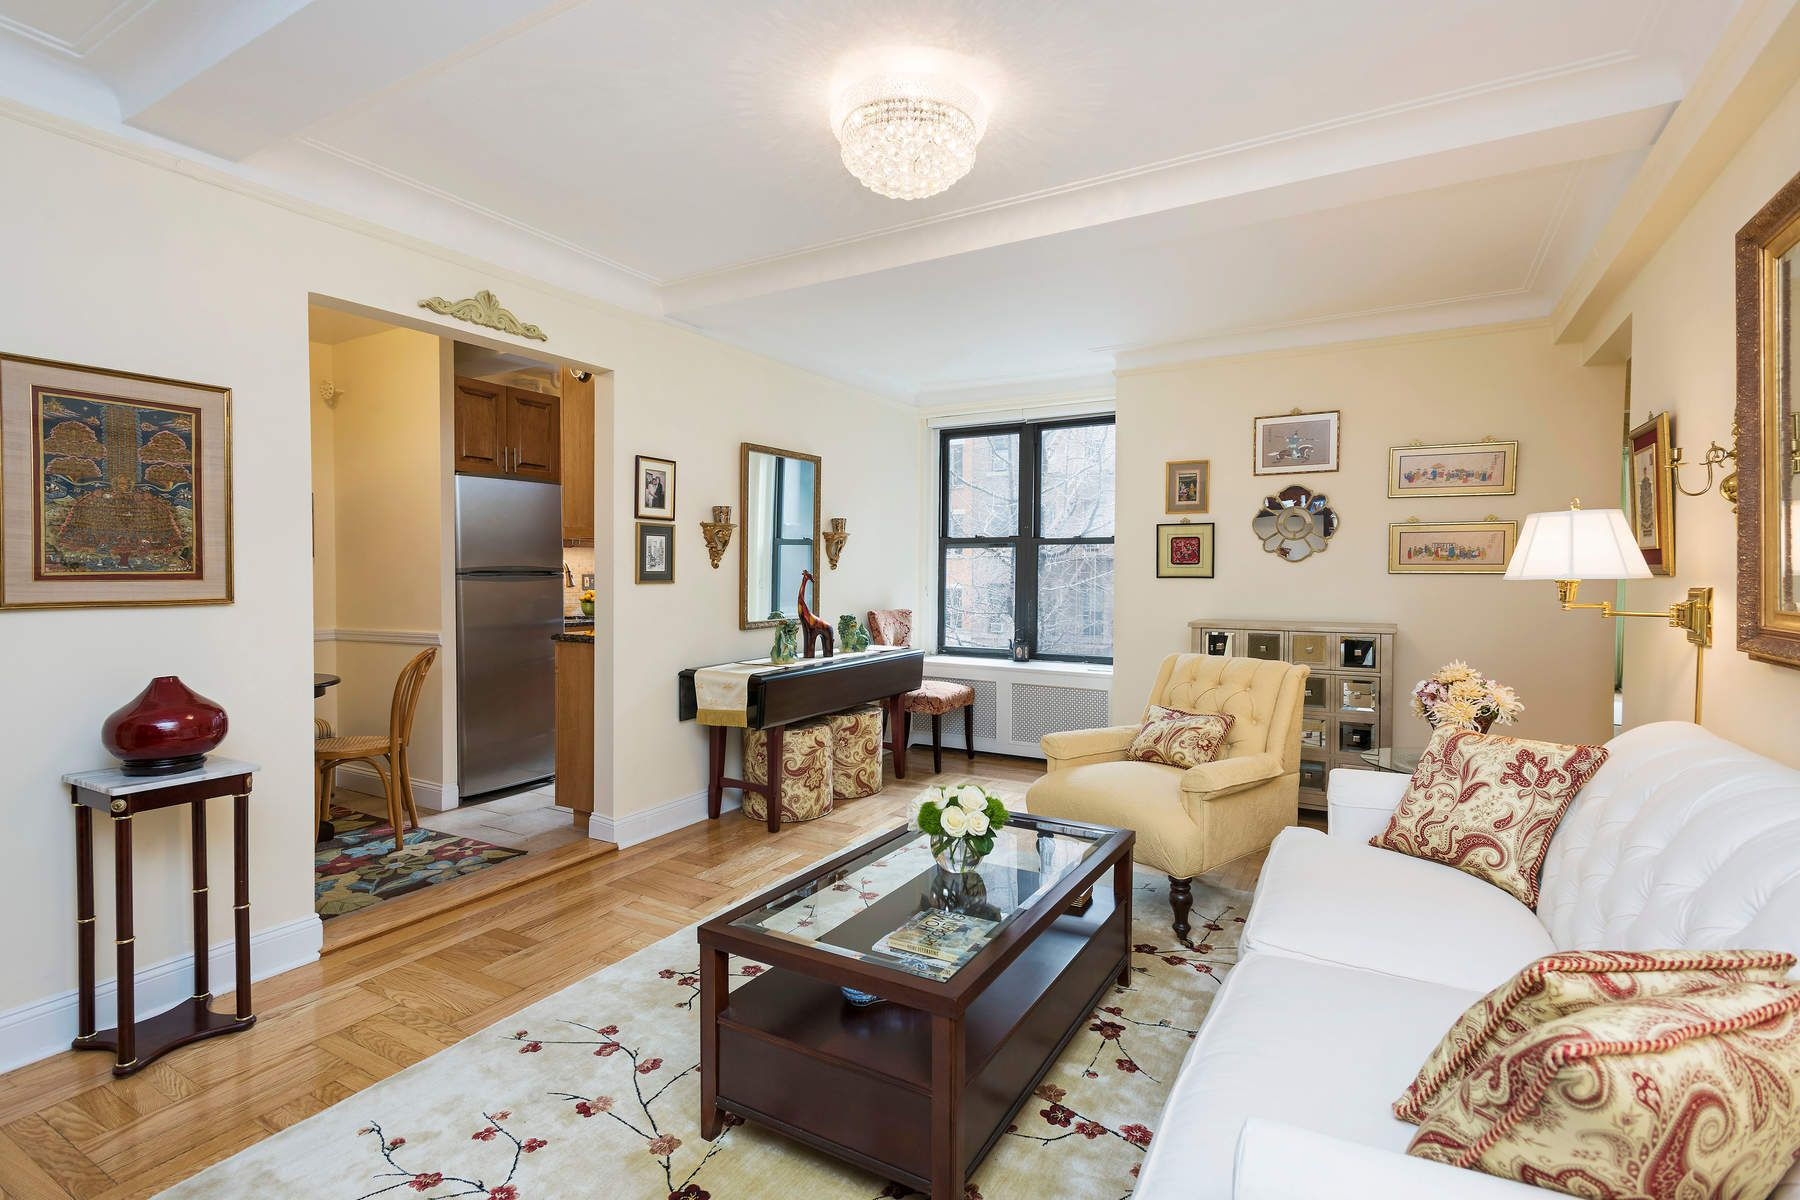 تعاوني للـ Sale في Midtown East - Coveted Pre-War 333 East 53rd Street Apt 3F, Midtown East, New York, New York, 10022 United States